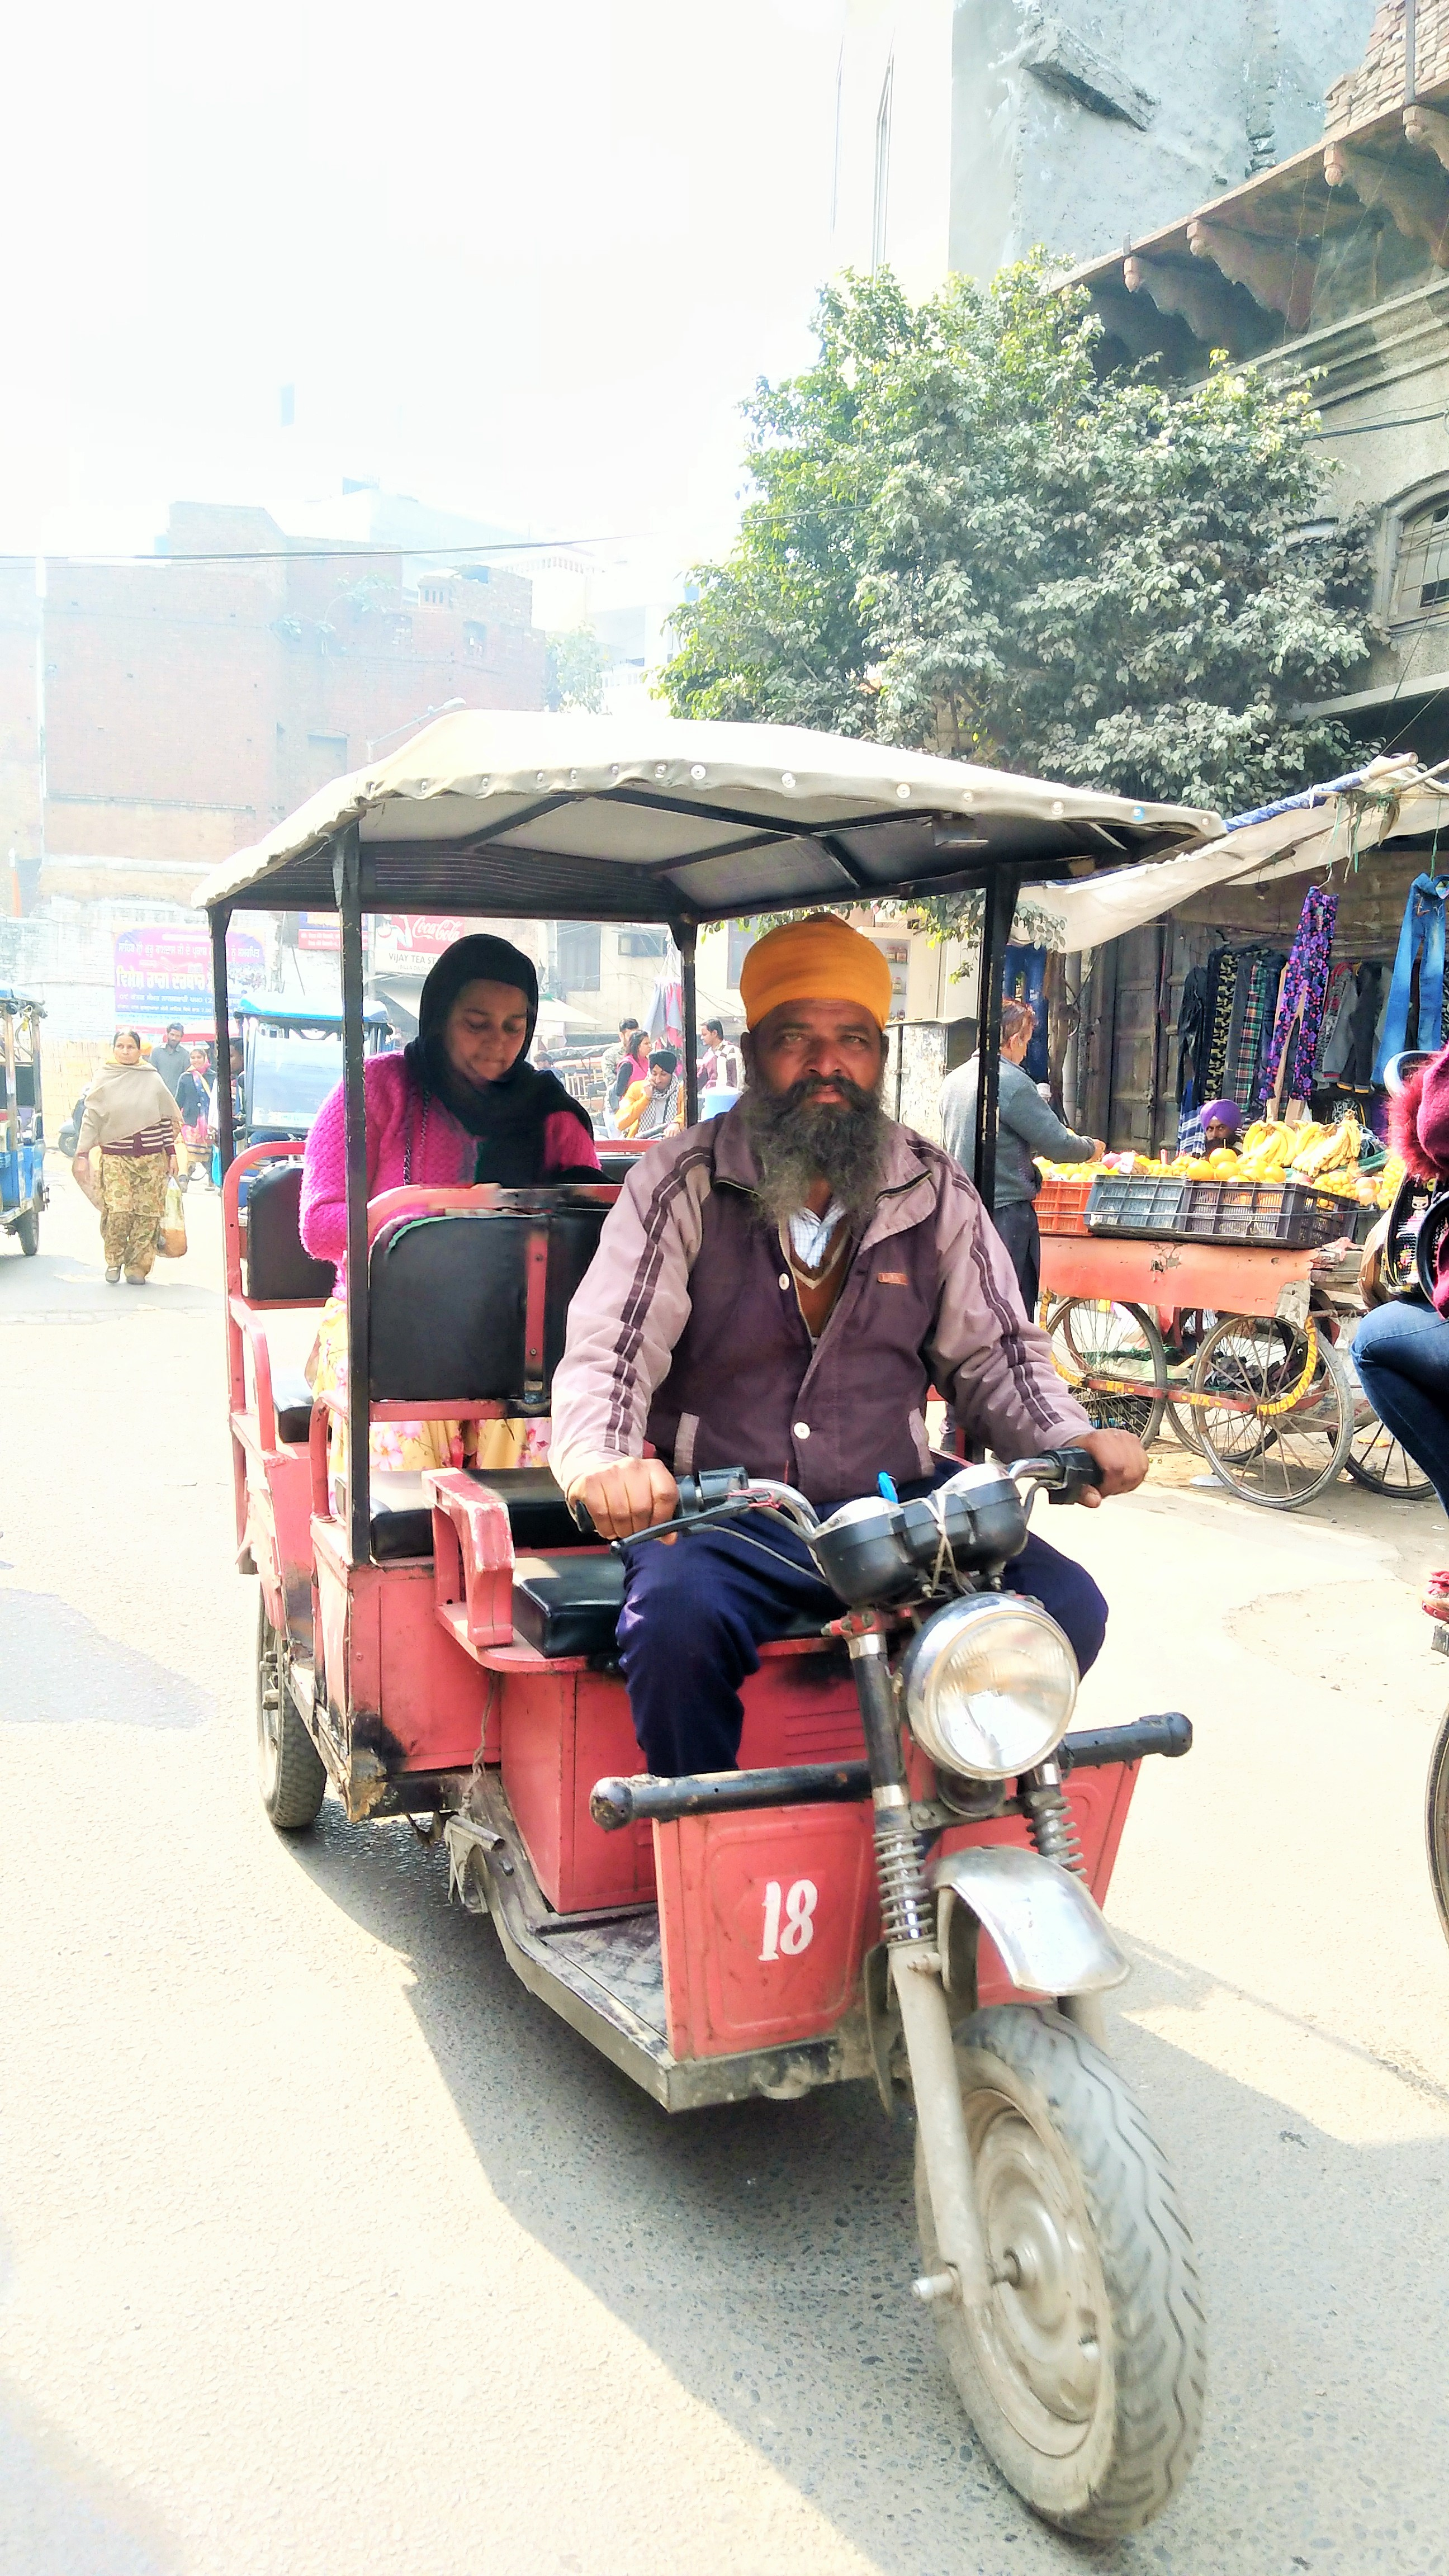 Amritsar's version of auto rickshaws